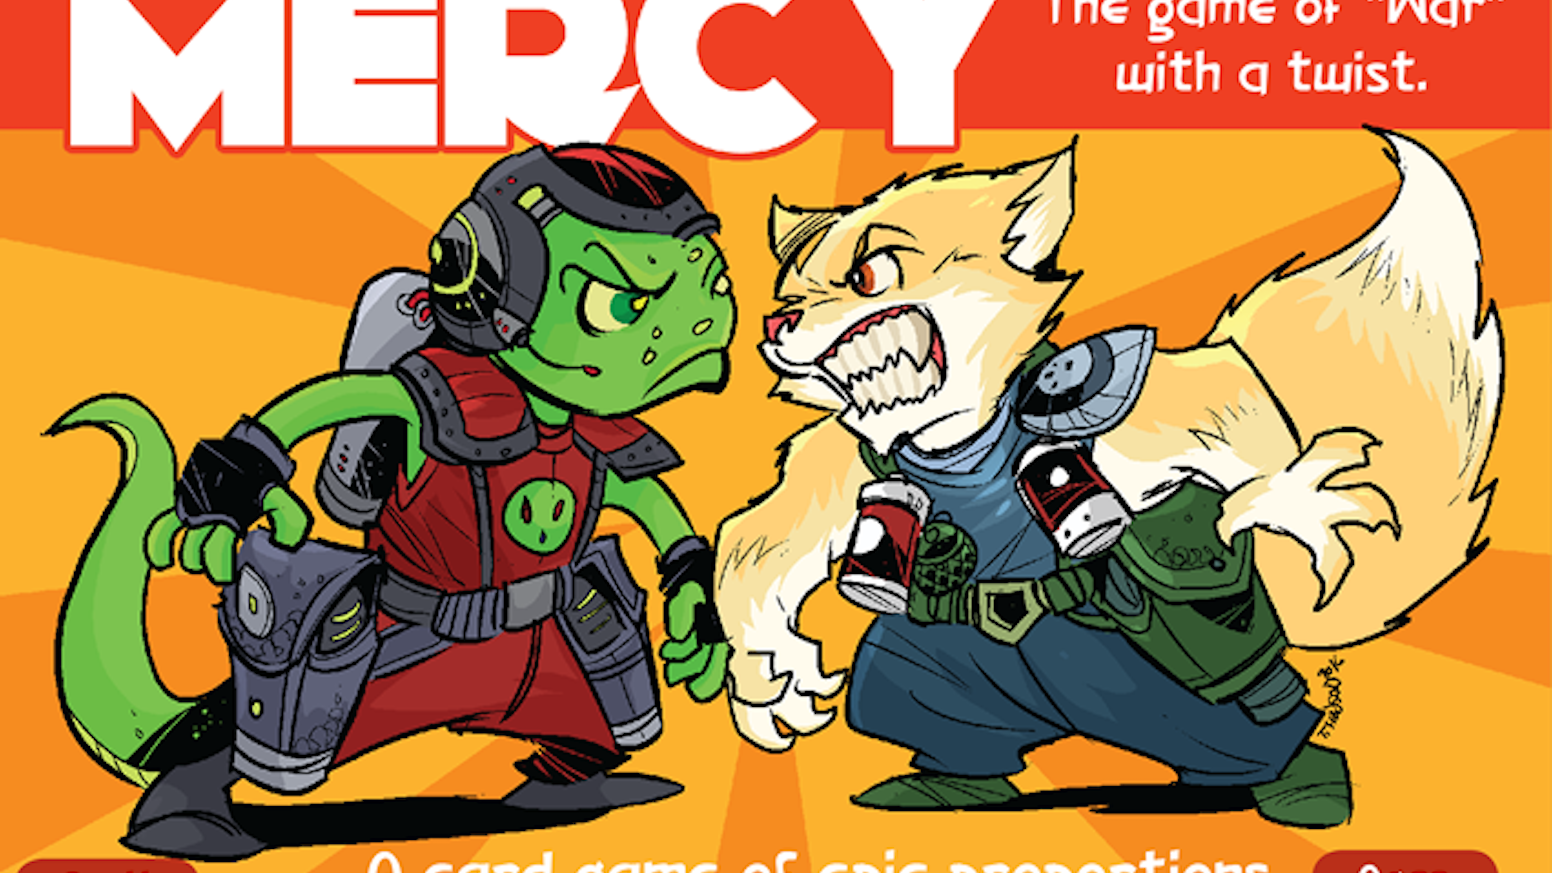 No Mercy - A kitty vs alien card game by travis hanson » THE